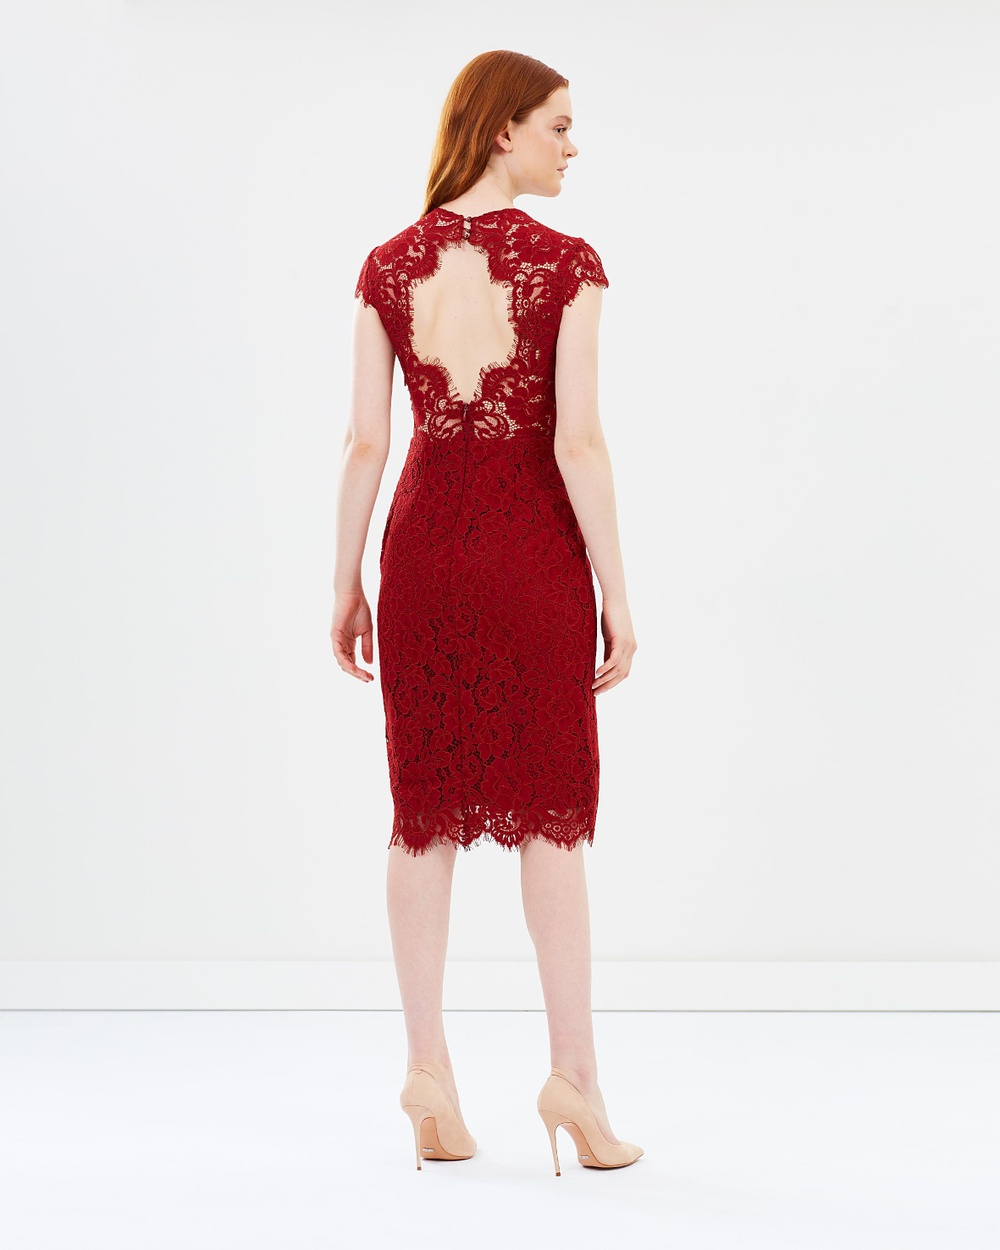 Ivy & Oak Lace Cocktail Dress Dresses Rusty Red Lace Cocktail Dress